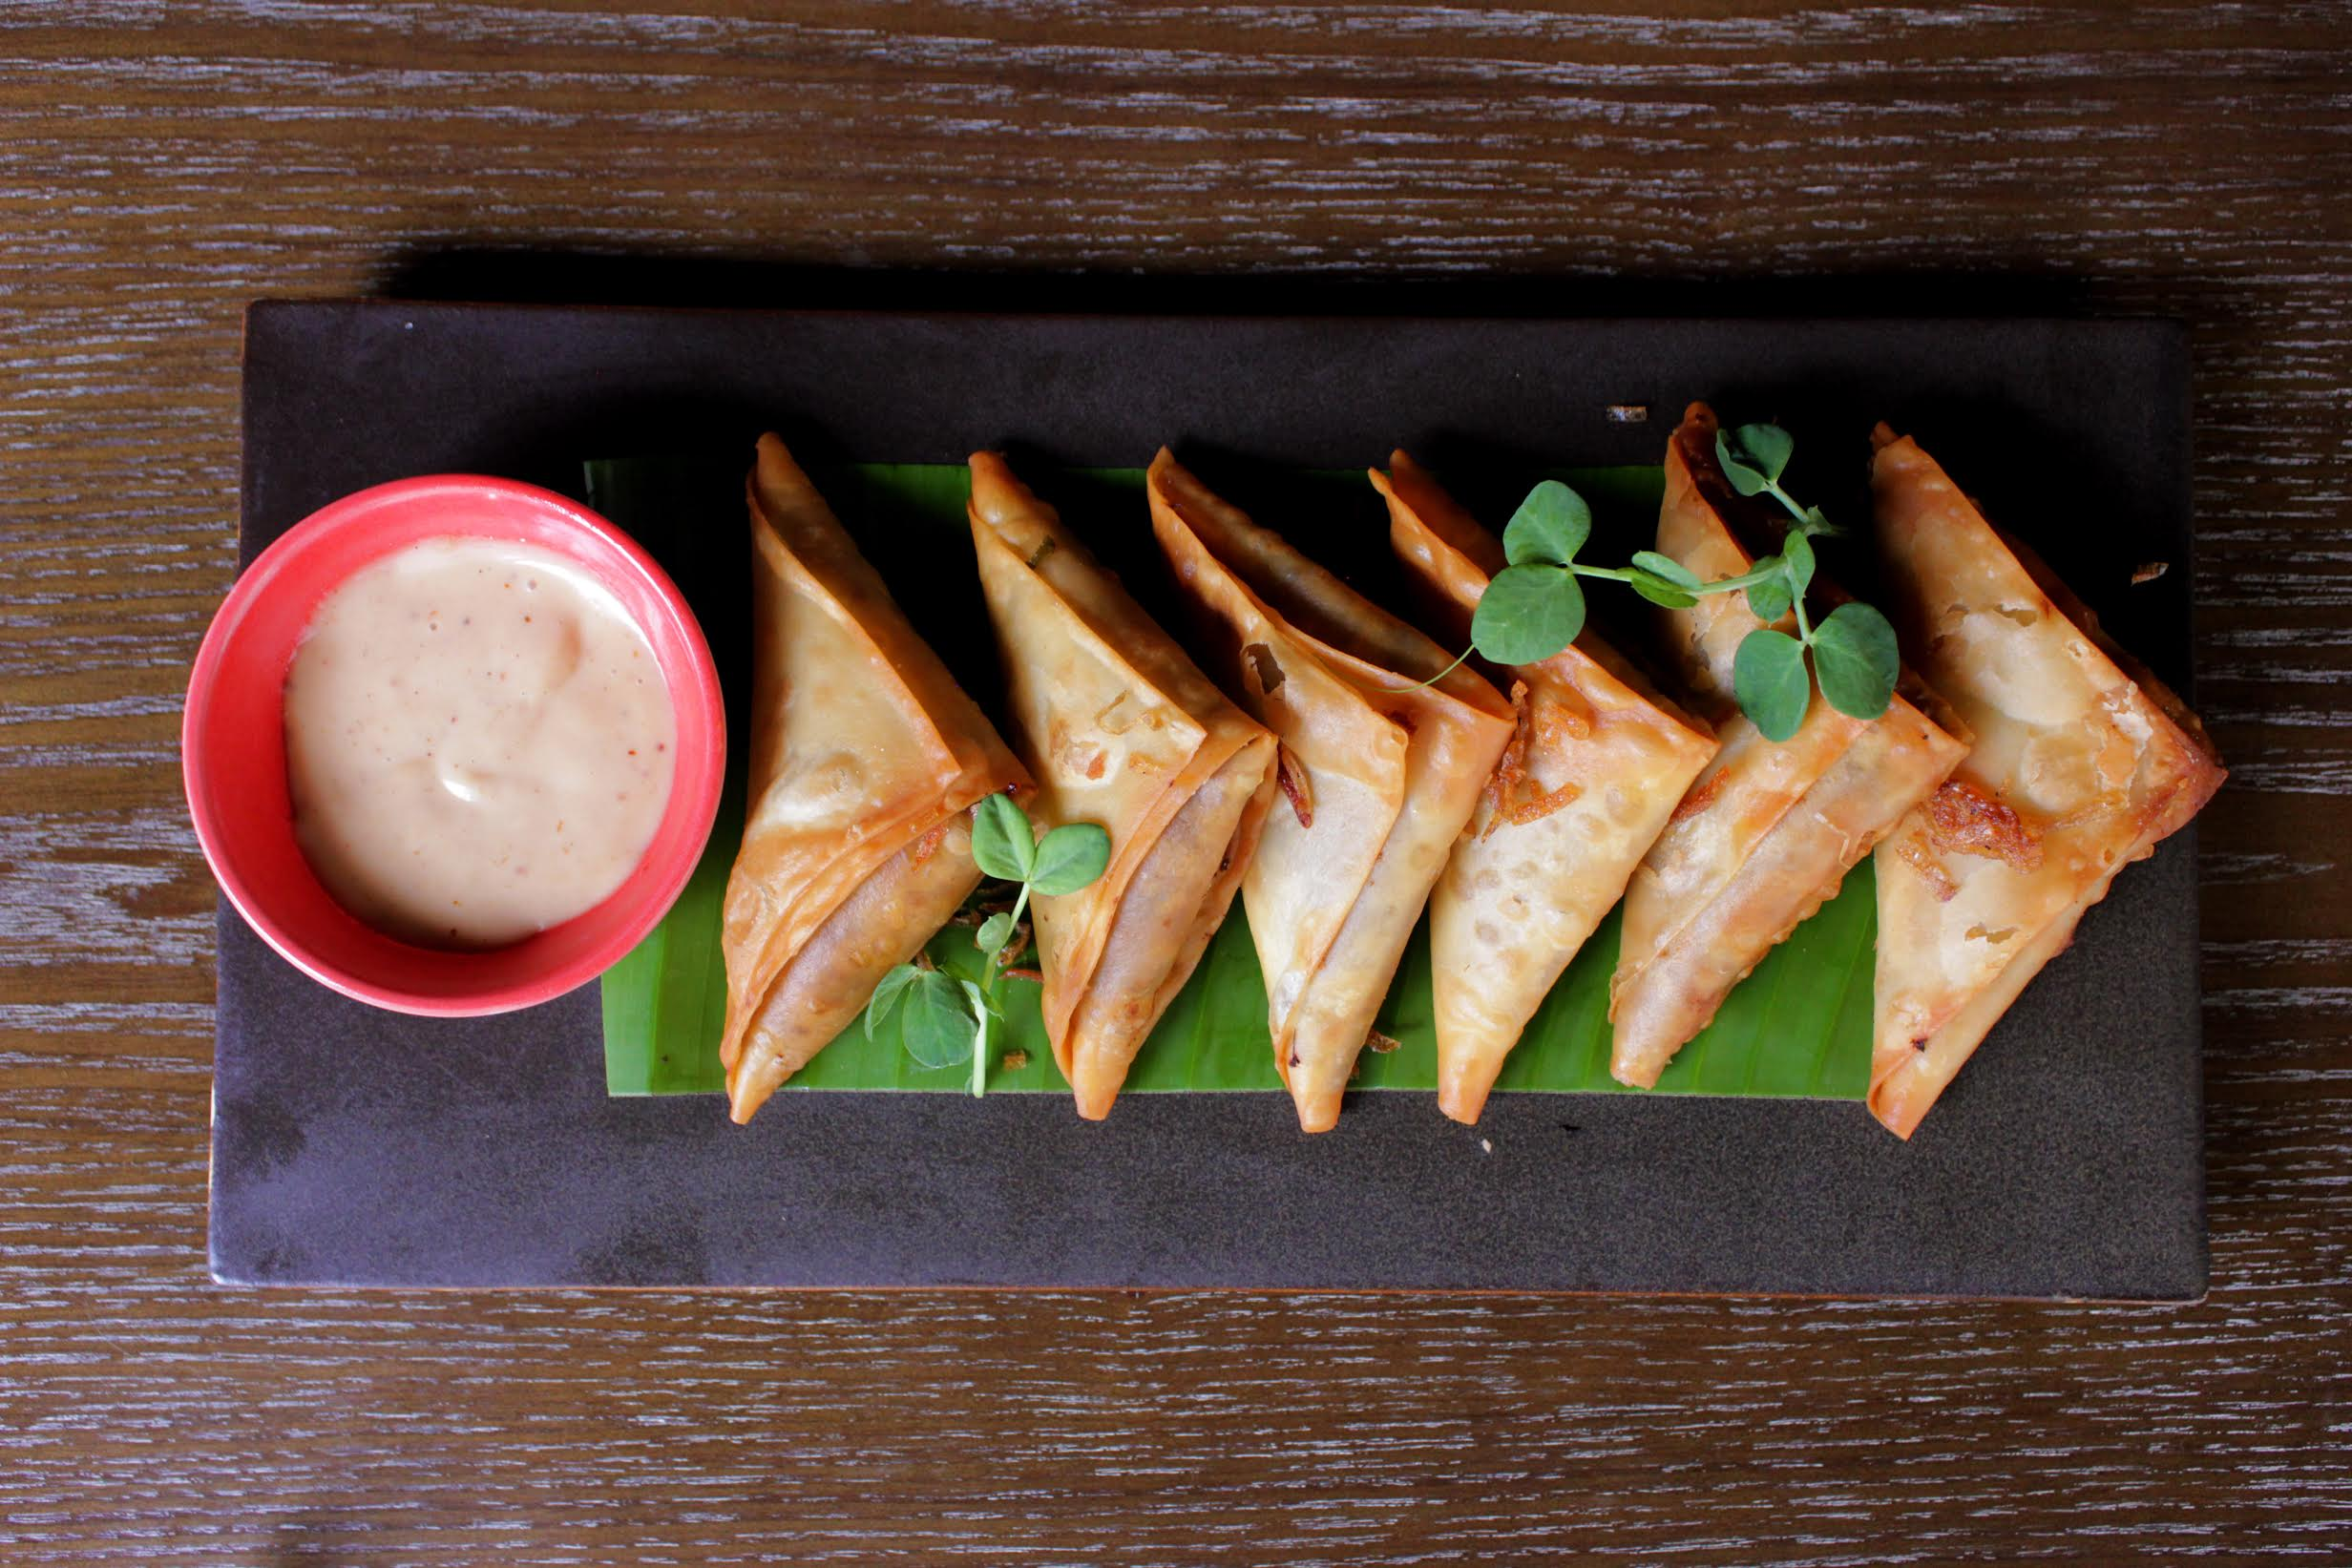 You + Haleem + Samosas = The best love triangle ever!